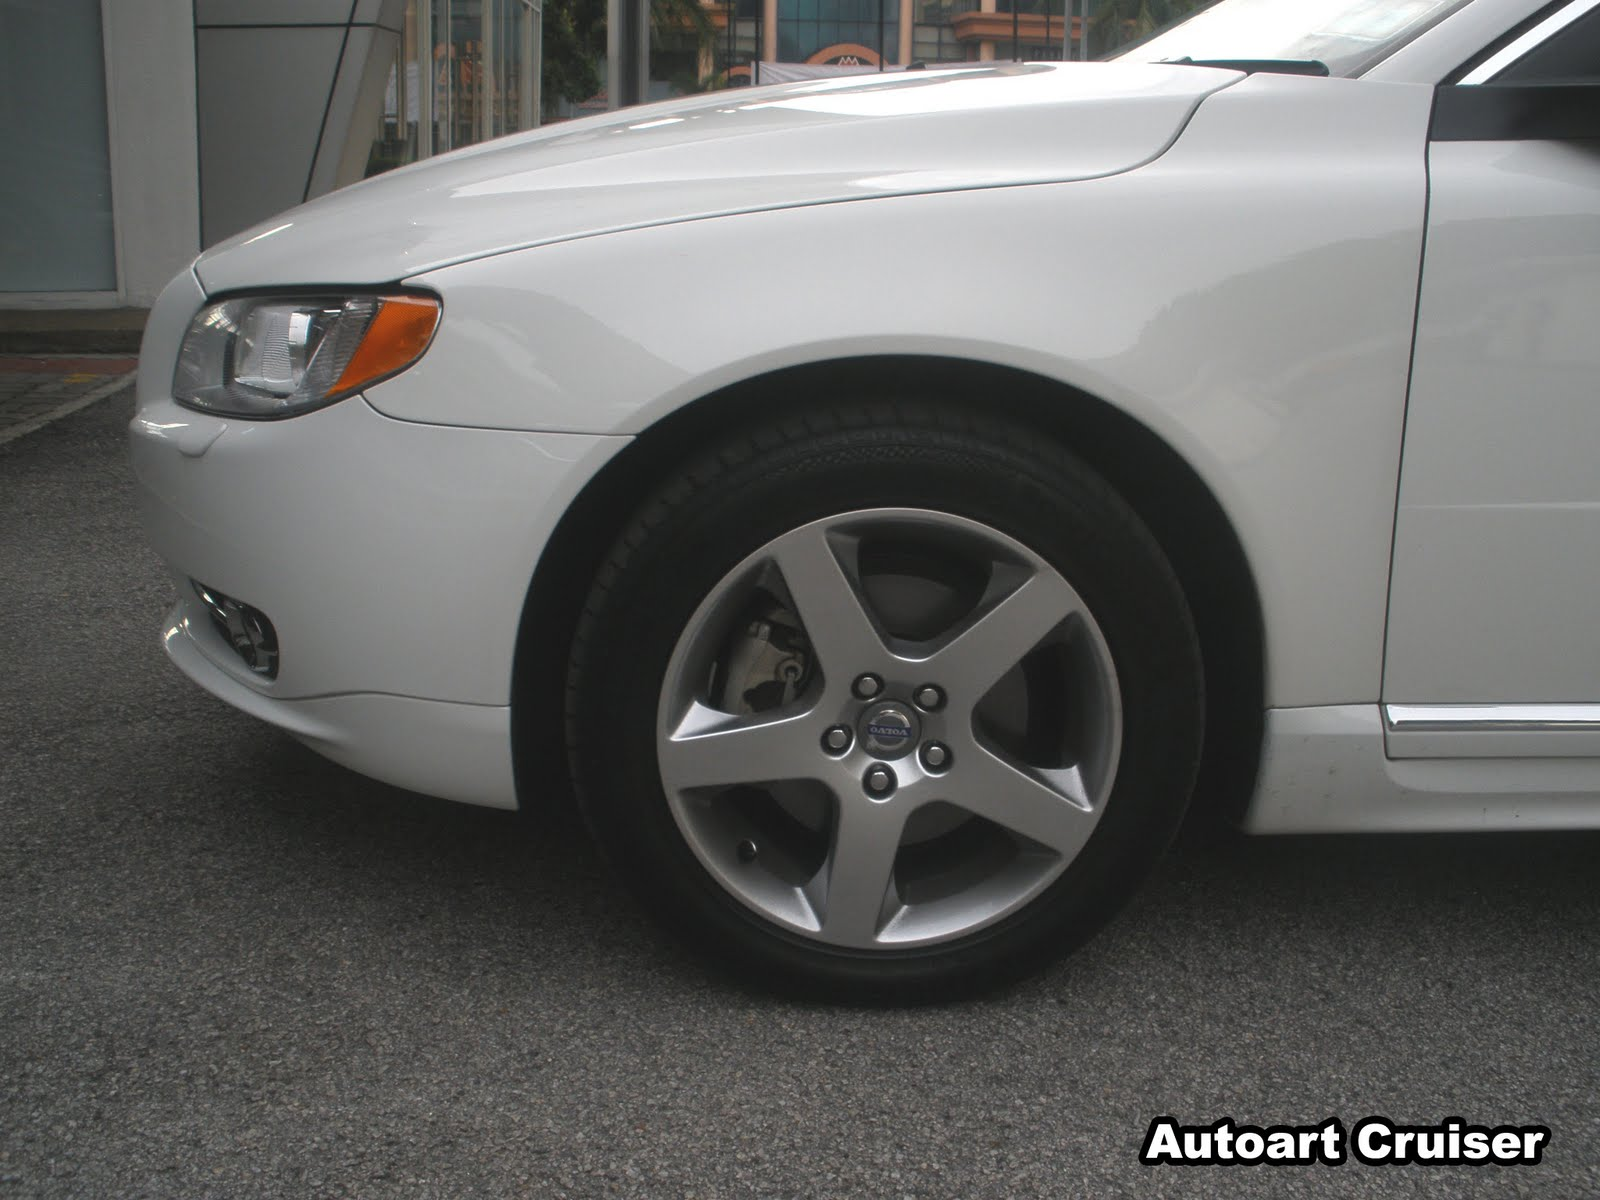 Autoart Cruiser  The 2010 Volvo S80 2 5T Test Drive Diary